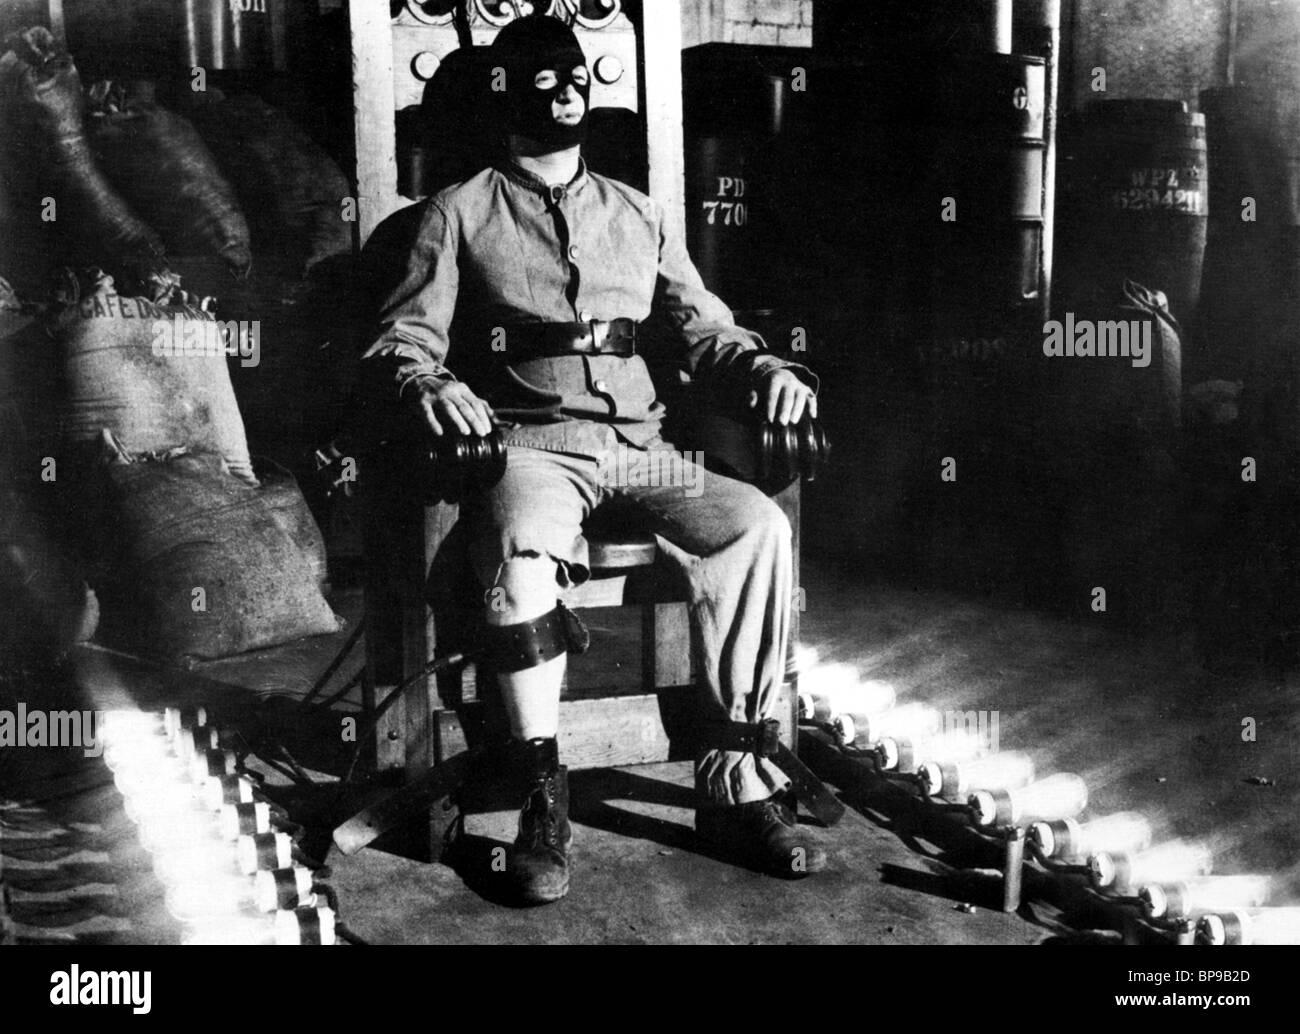 Stupendous The Electric Chair Black And White Stock Photos Images Alamy Cjindustries Chair Design For Home Cjindustriesco